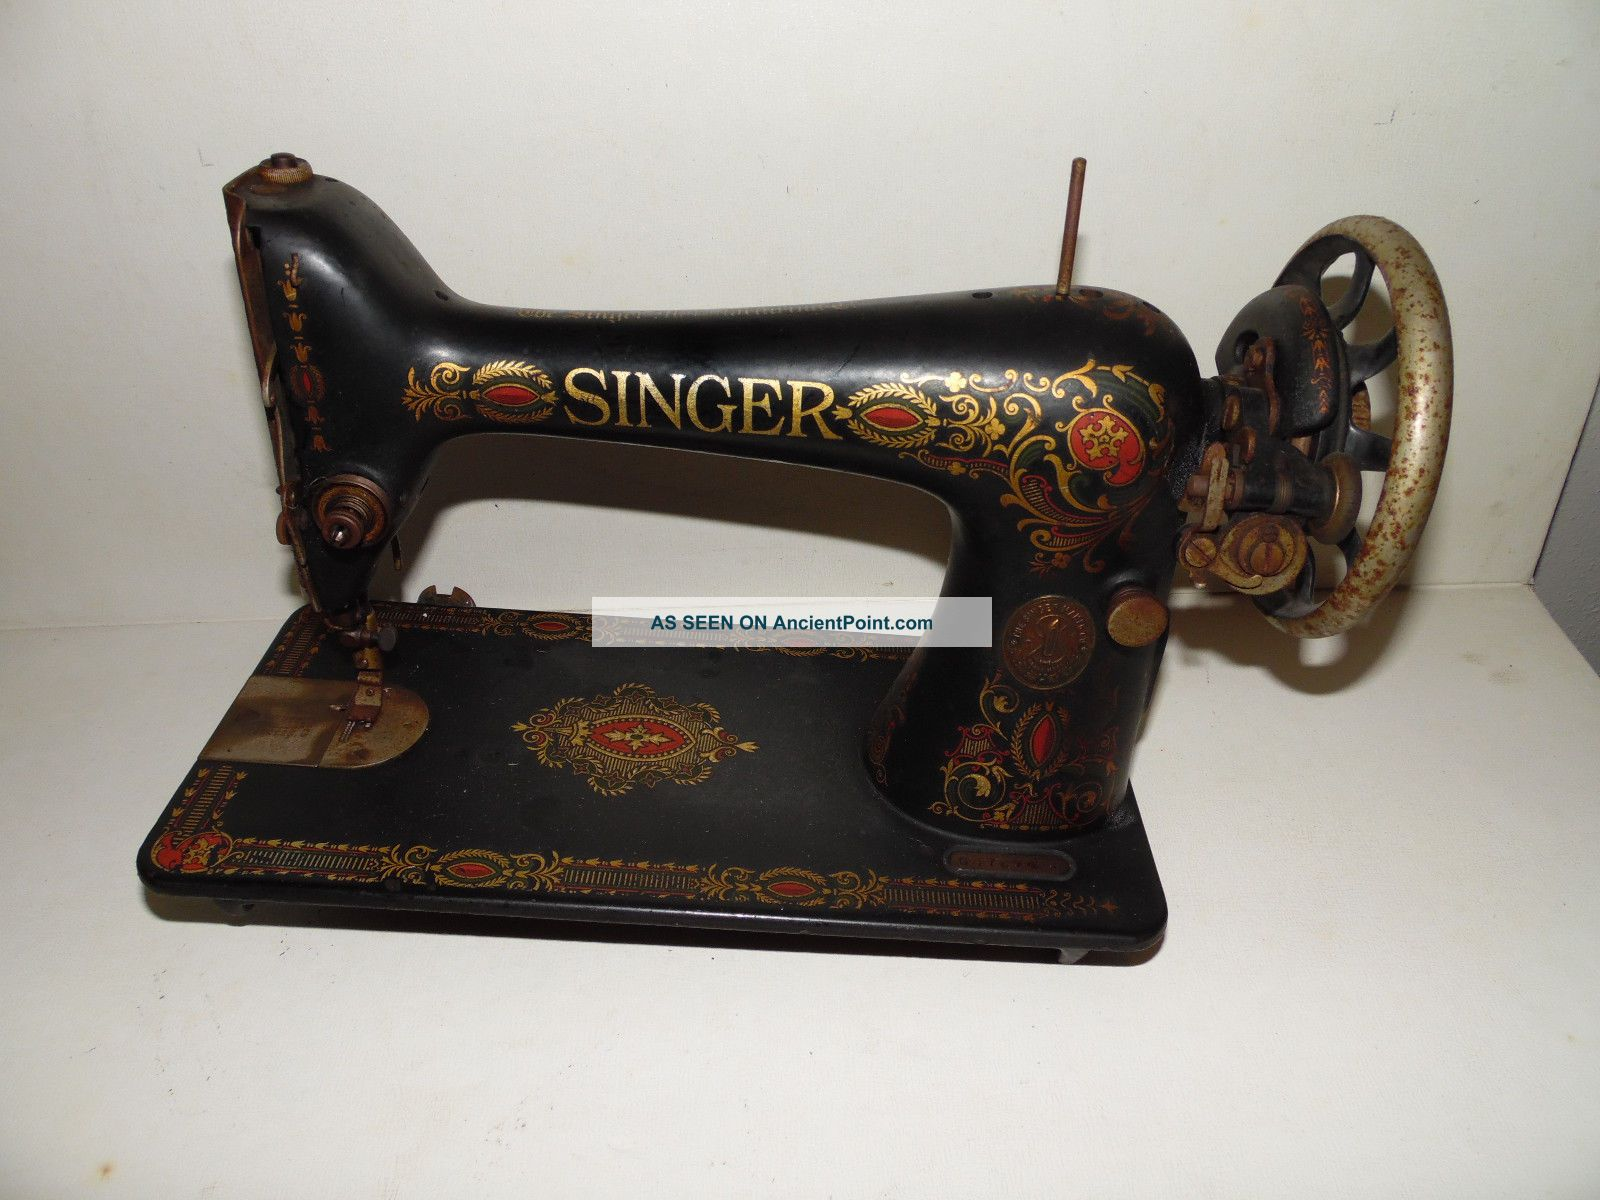 Antique Singer Red Eye Sewing Machine 1916 Treadle Model 66 Serial G4789425 Sewing Machines photo